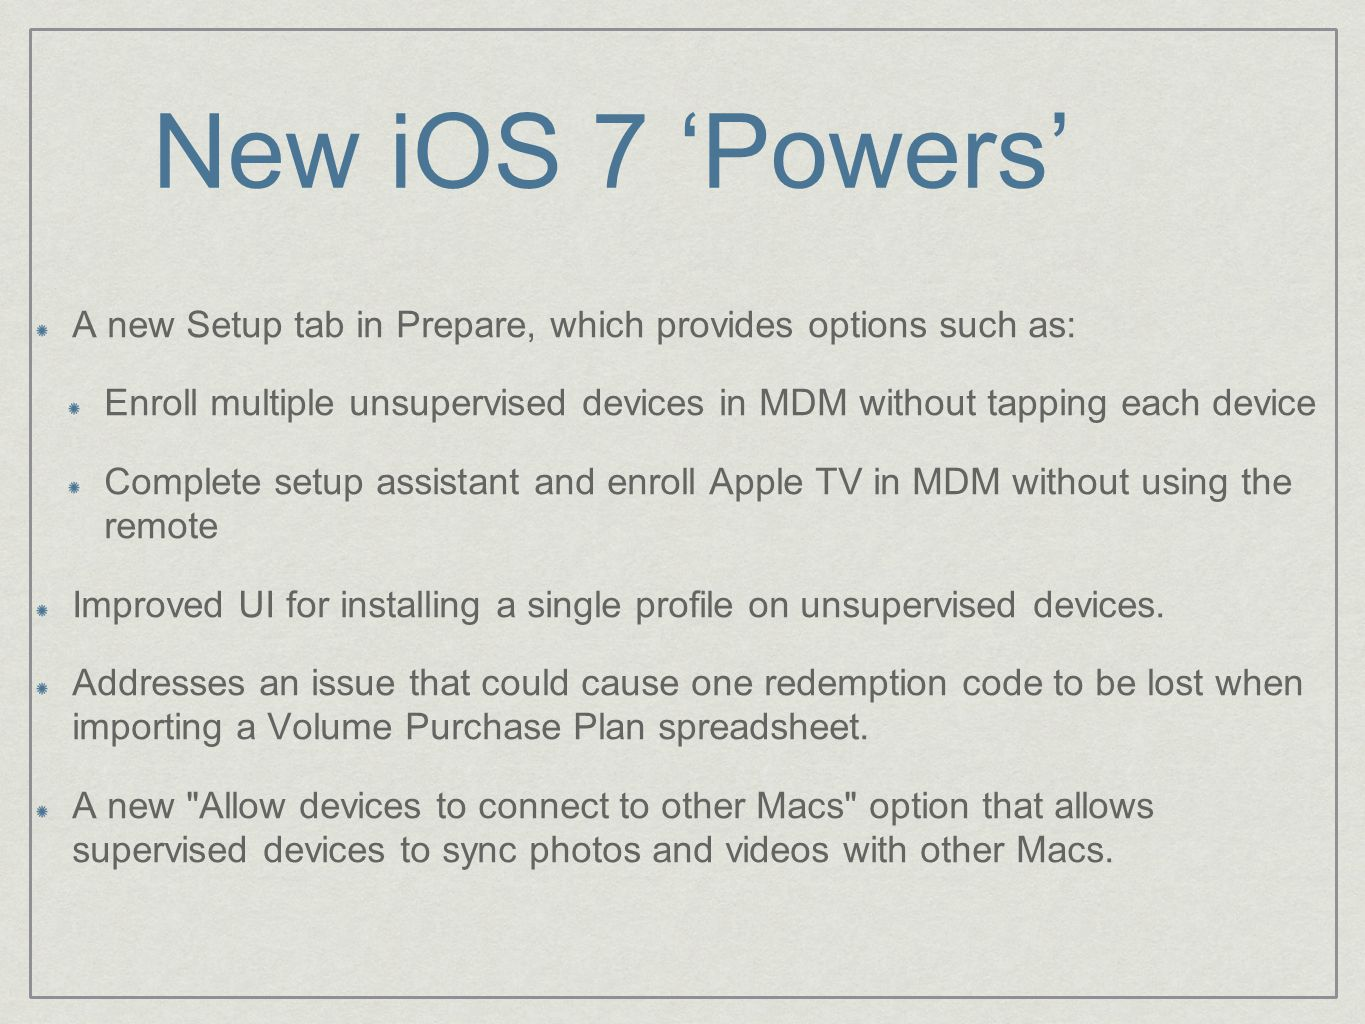 New iOS 7 'Powers' A new Setup tab in Prepare, which provides options such as: Enroll multiple unsupervised devices in MDM without tapping each device